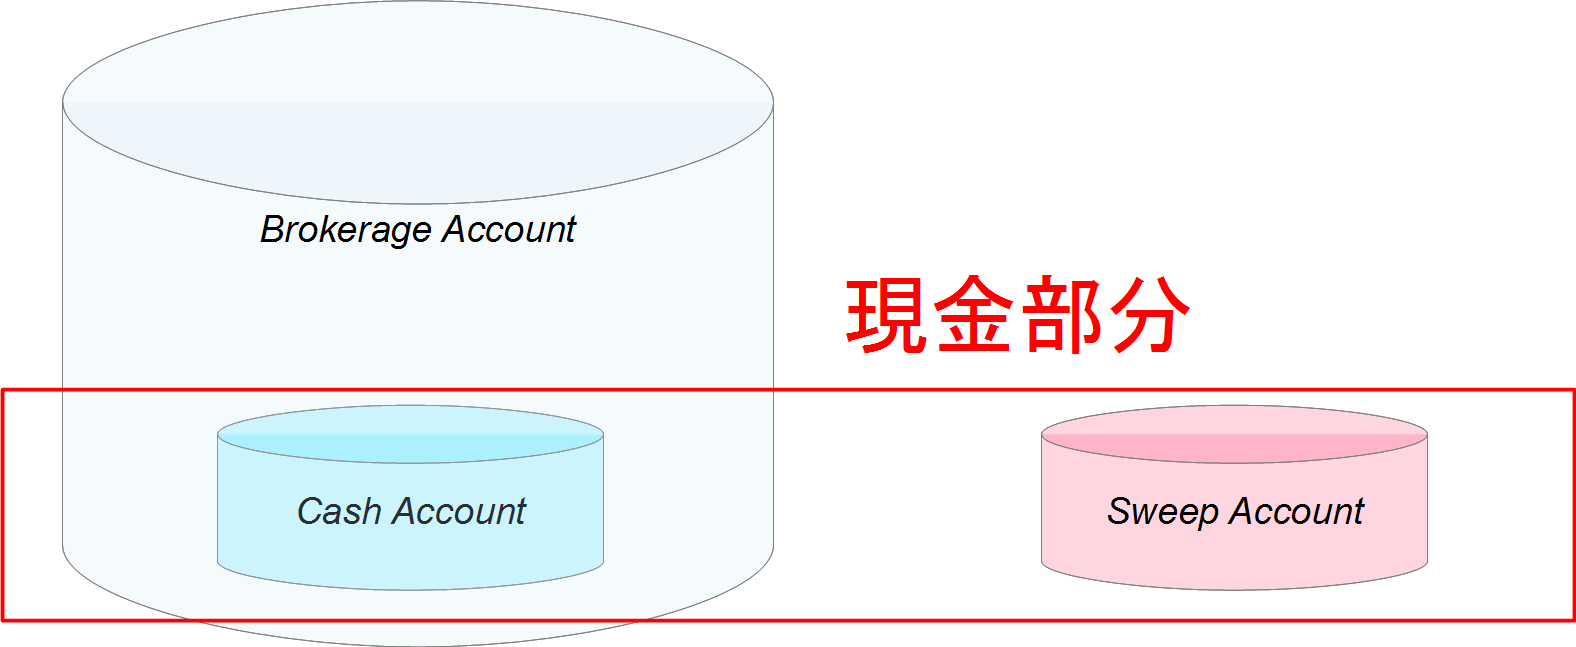 Brokerage Account と Sweep Account